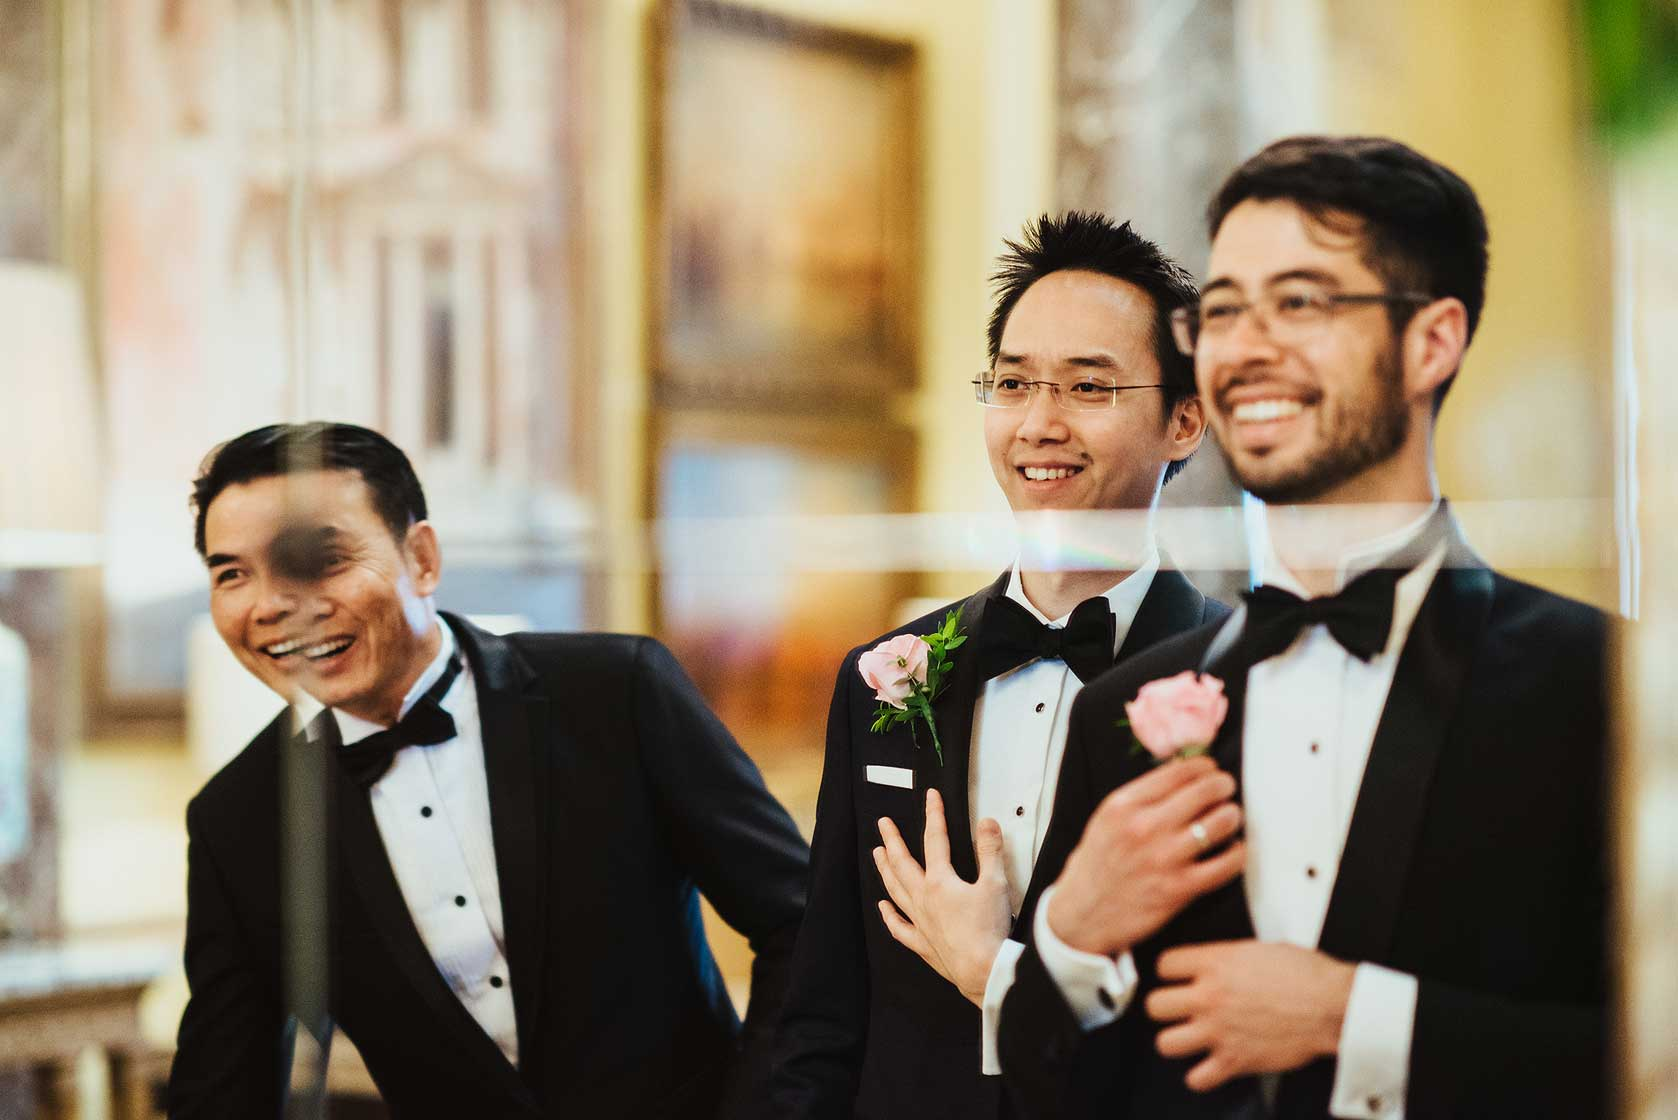 Groom and best man check themselves in a mirror